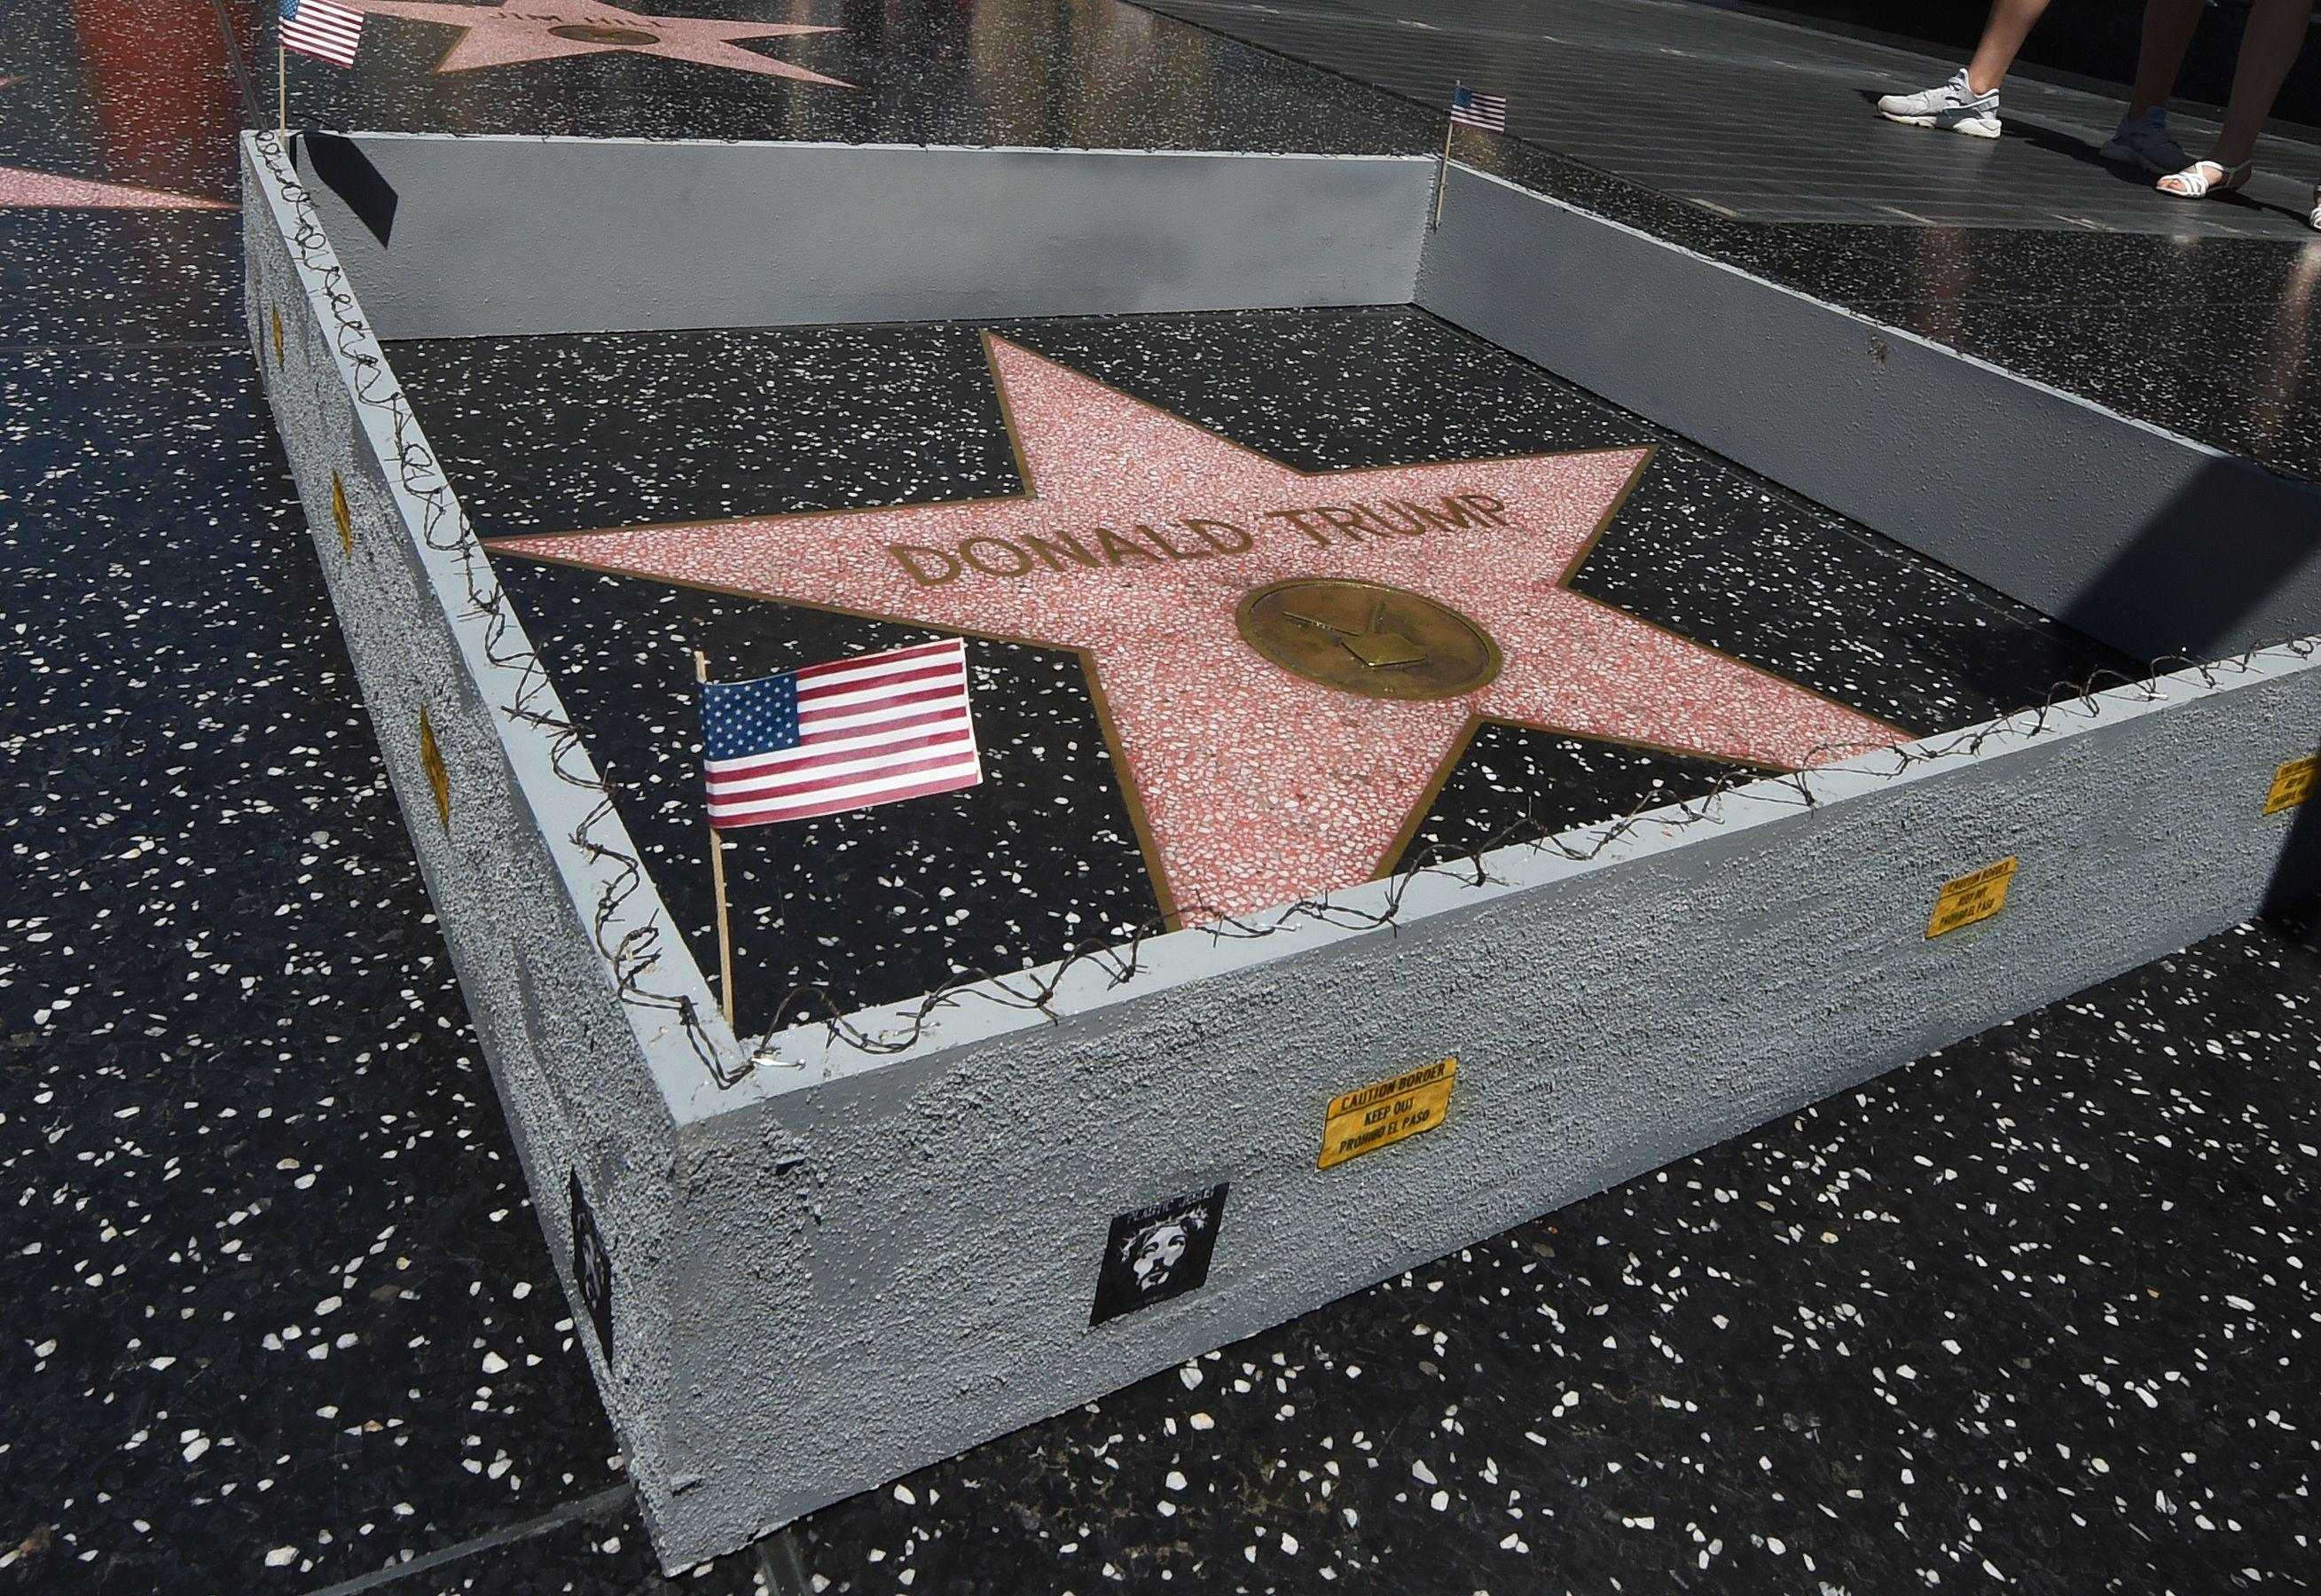 Donald Trump's Hollywood Walk of Fame star enclosed by a tiny gray fence topped with barbed wire and an American flag in one corner.